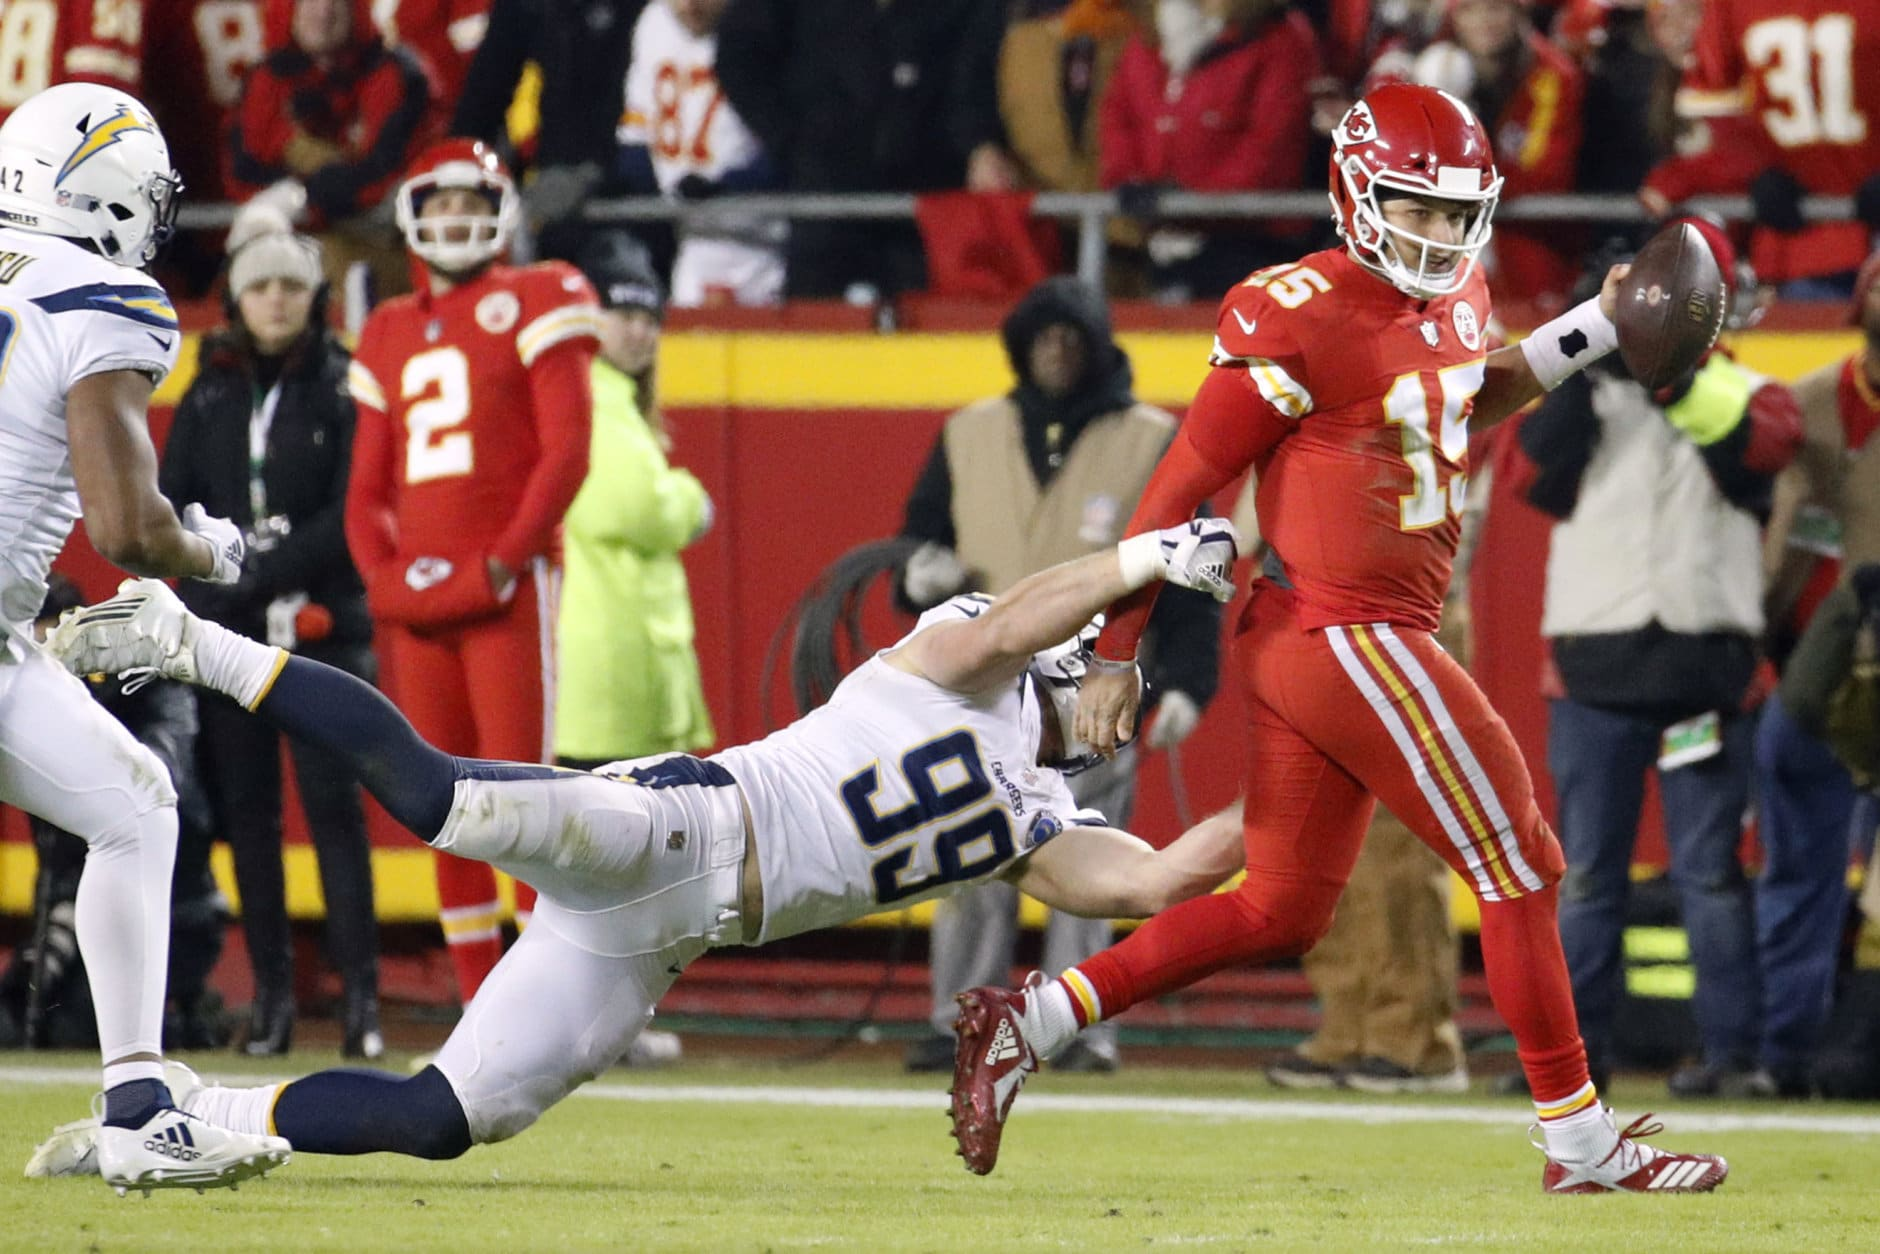 Kansas City Chiefs quarterback Patrick Mahomes (15) runs past a tackle attempt by Los Angeles Chargers defensive end Joey Bosa (99) during the second half of an NFL football game in Kansas City, Mo., Thursday, Dec. 13, 2018. (AP Photo/Charlie Riedel)